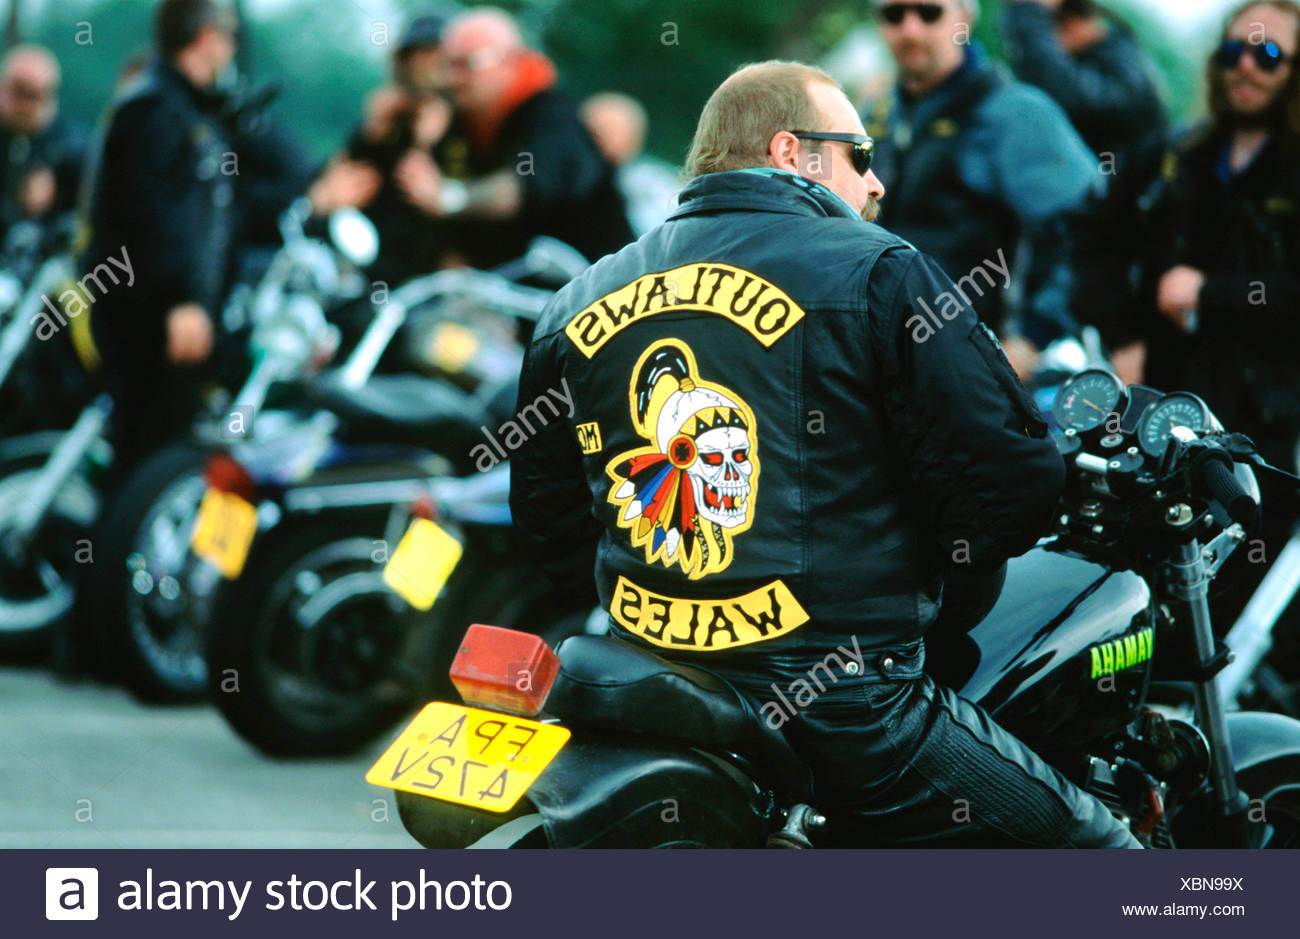 Outlaws Motorcycle Gang Stock Photos & Outlaws Motorcycle